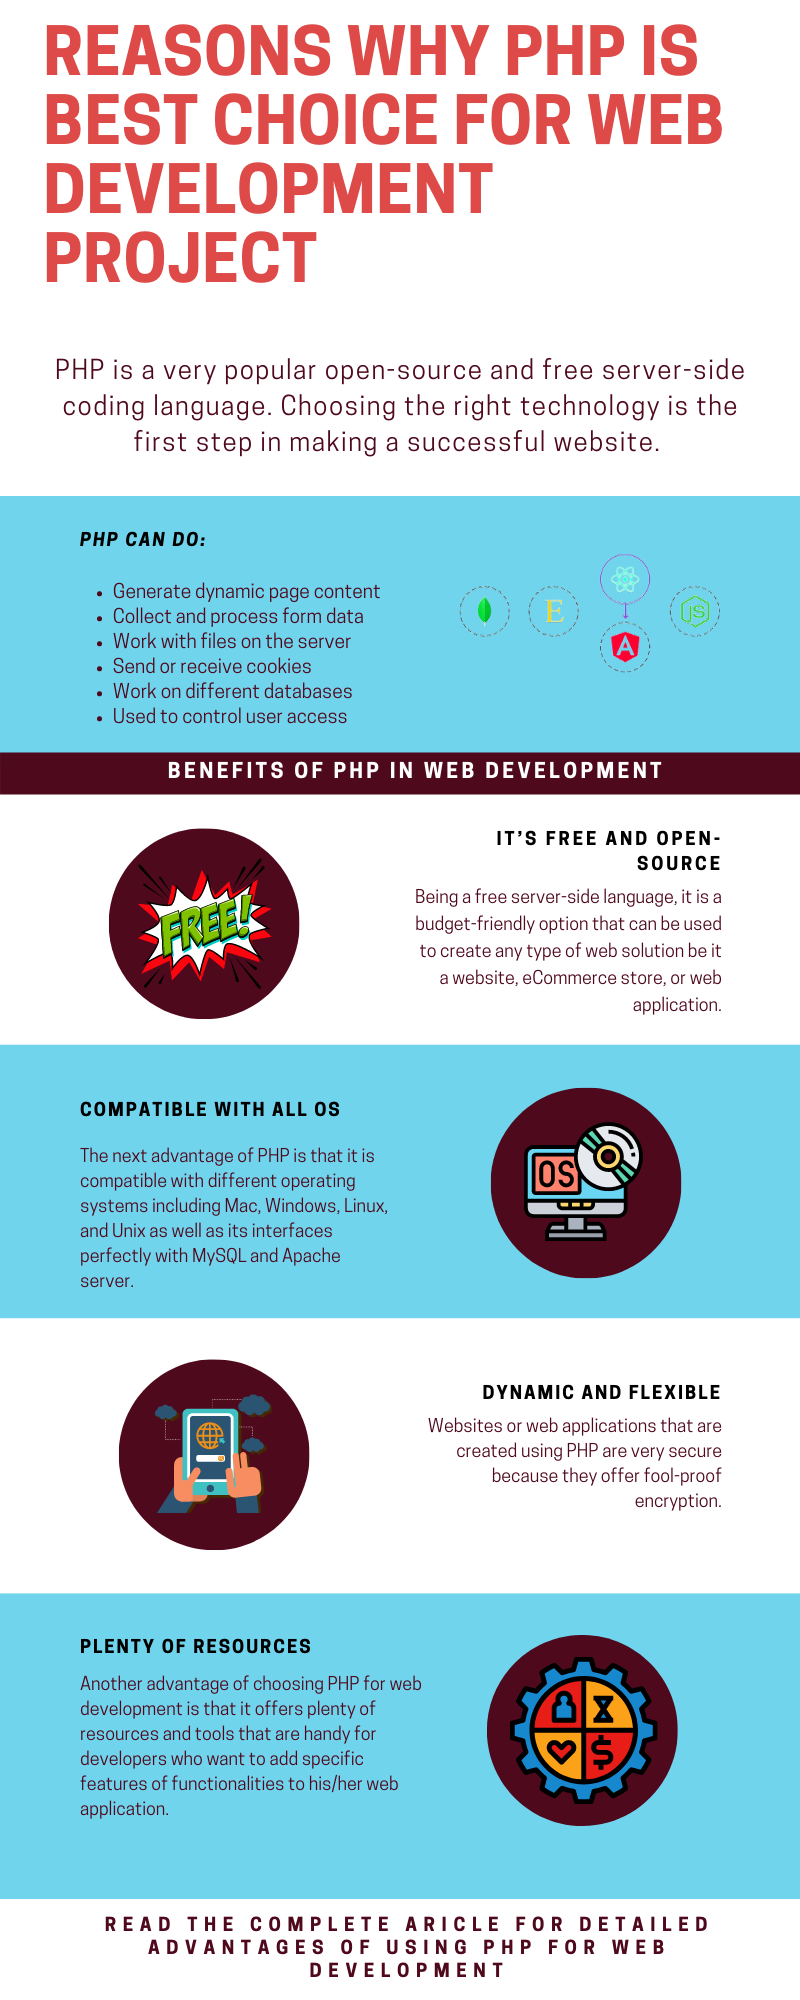 Why PHP is Best Choice for Web Development